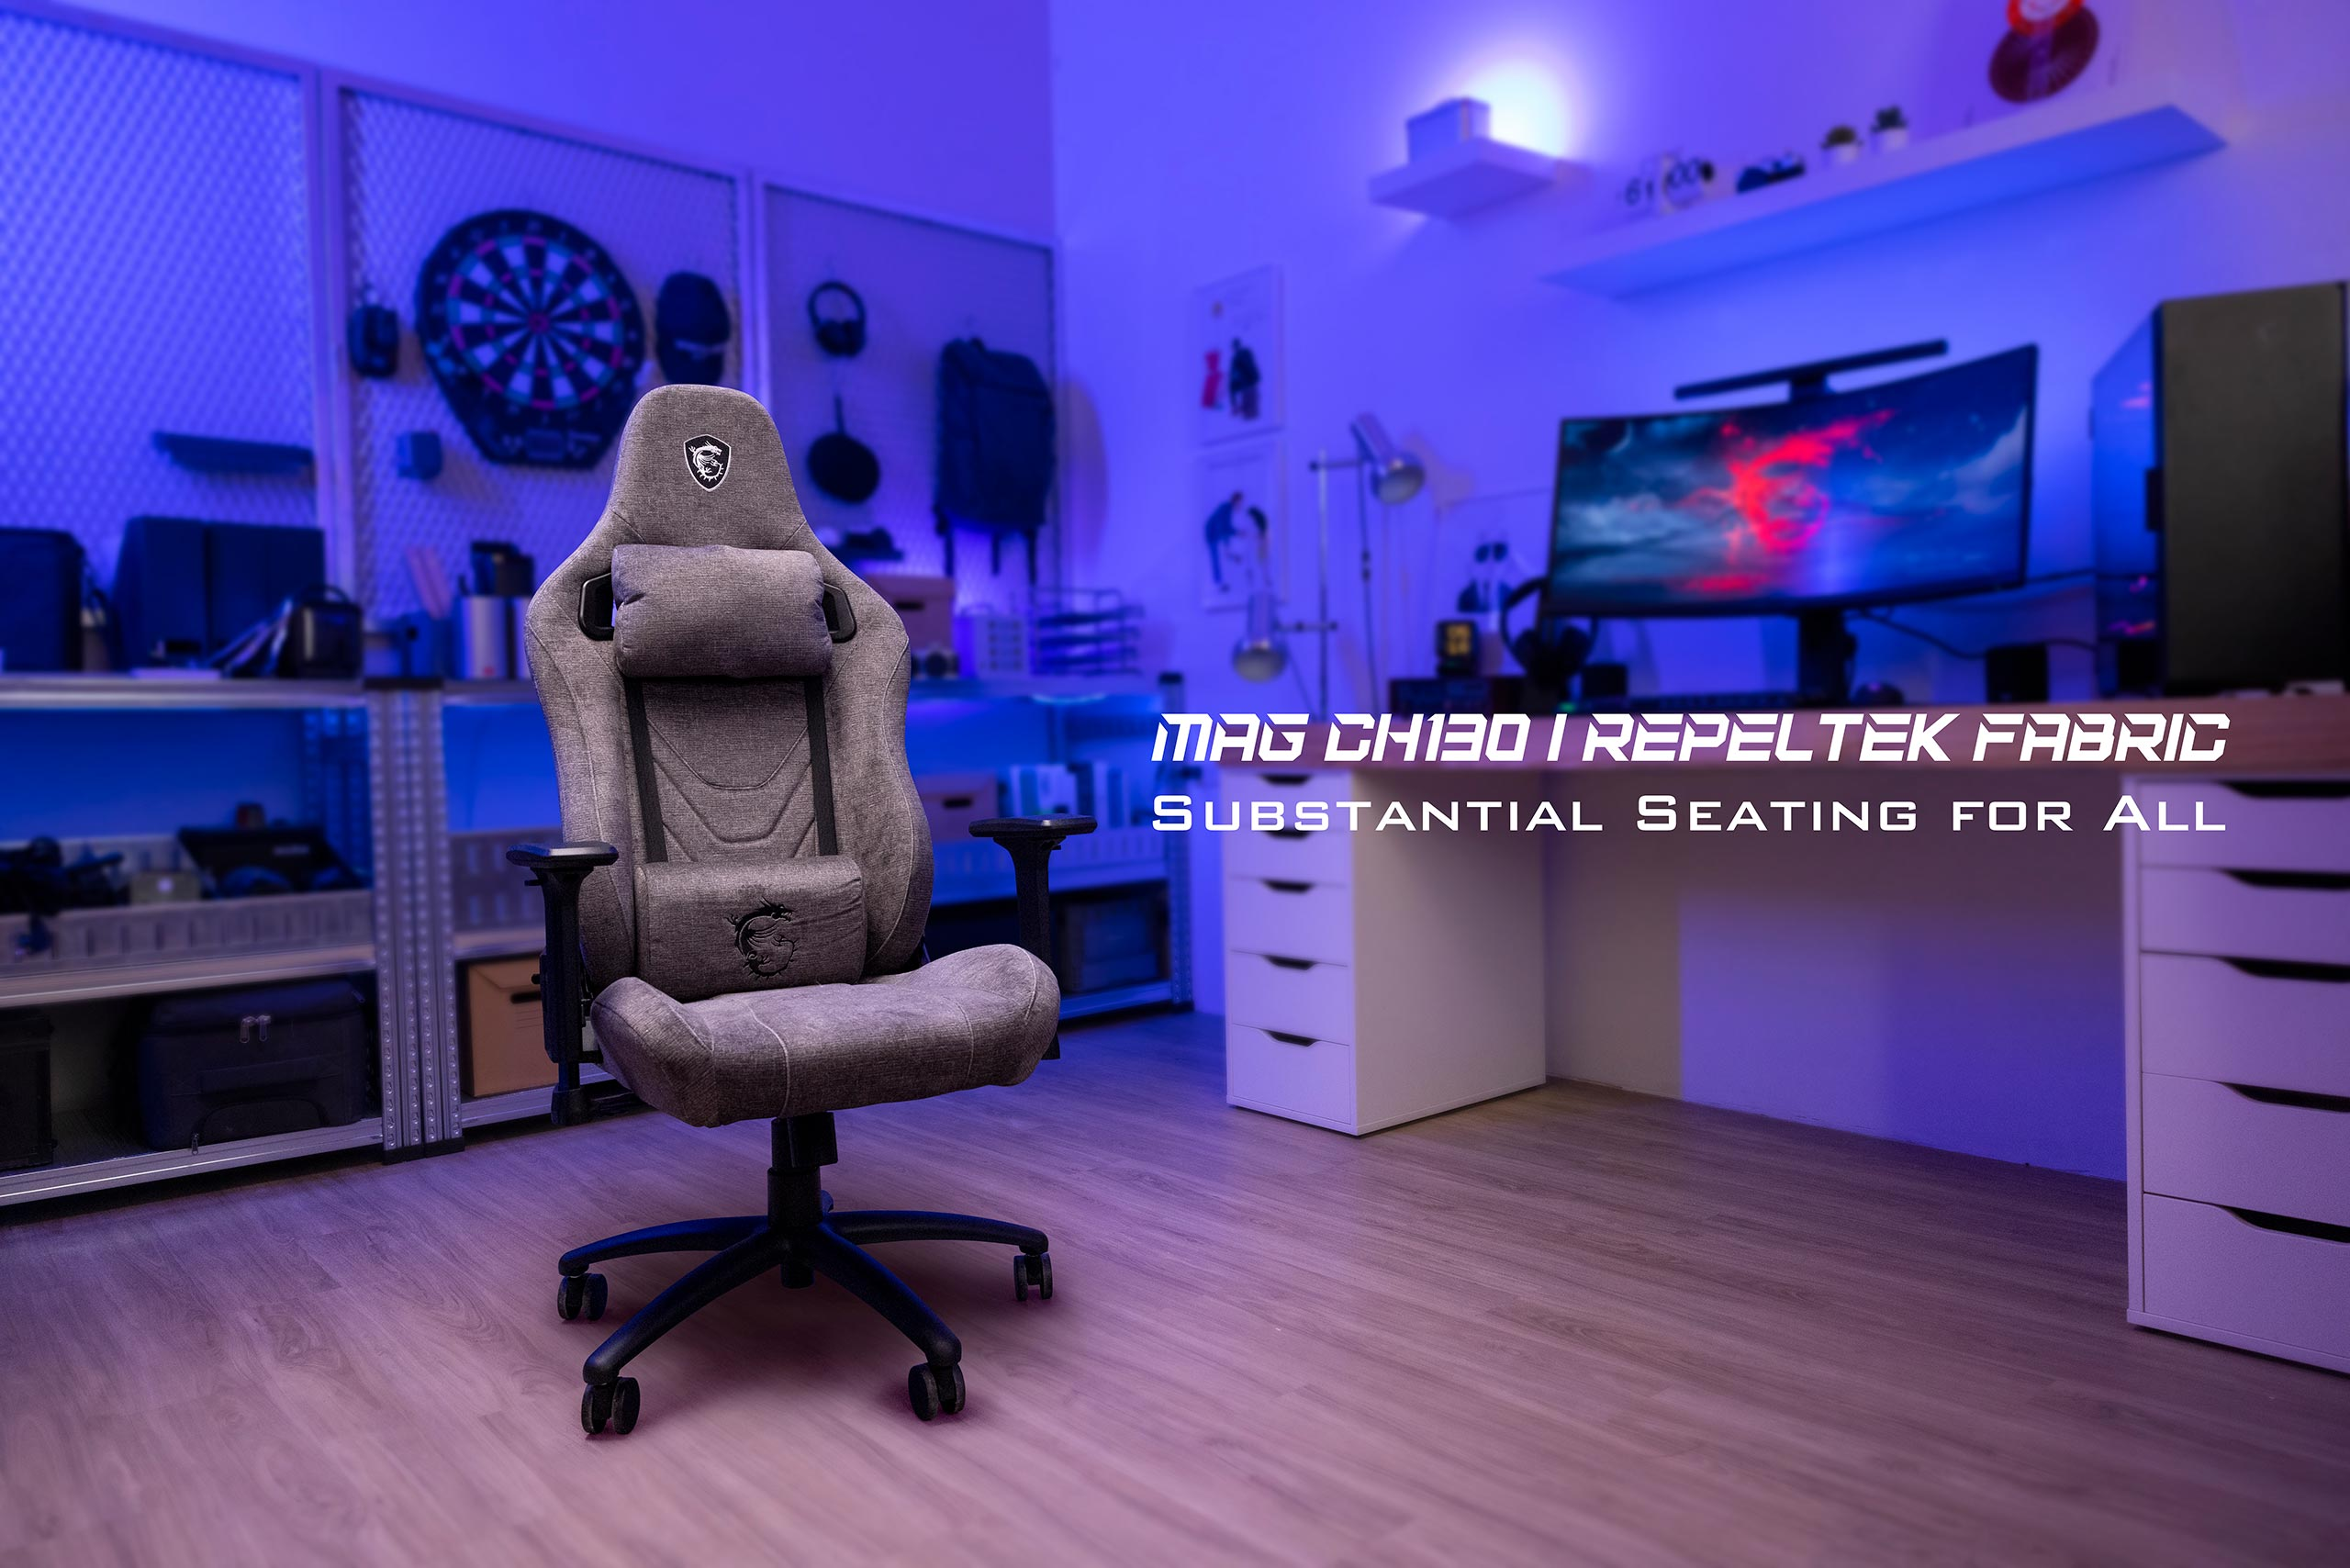 MAG CH130 X REPELTEK FABRIC